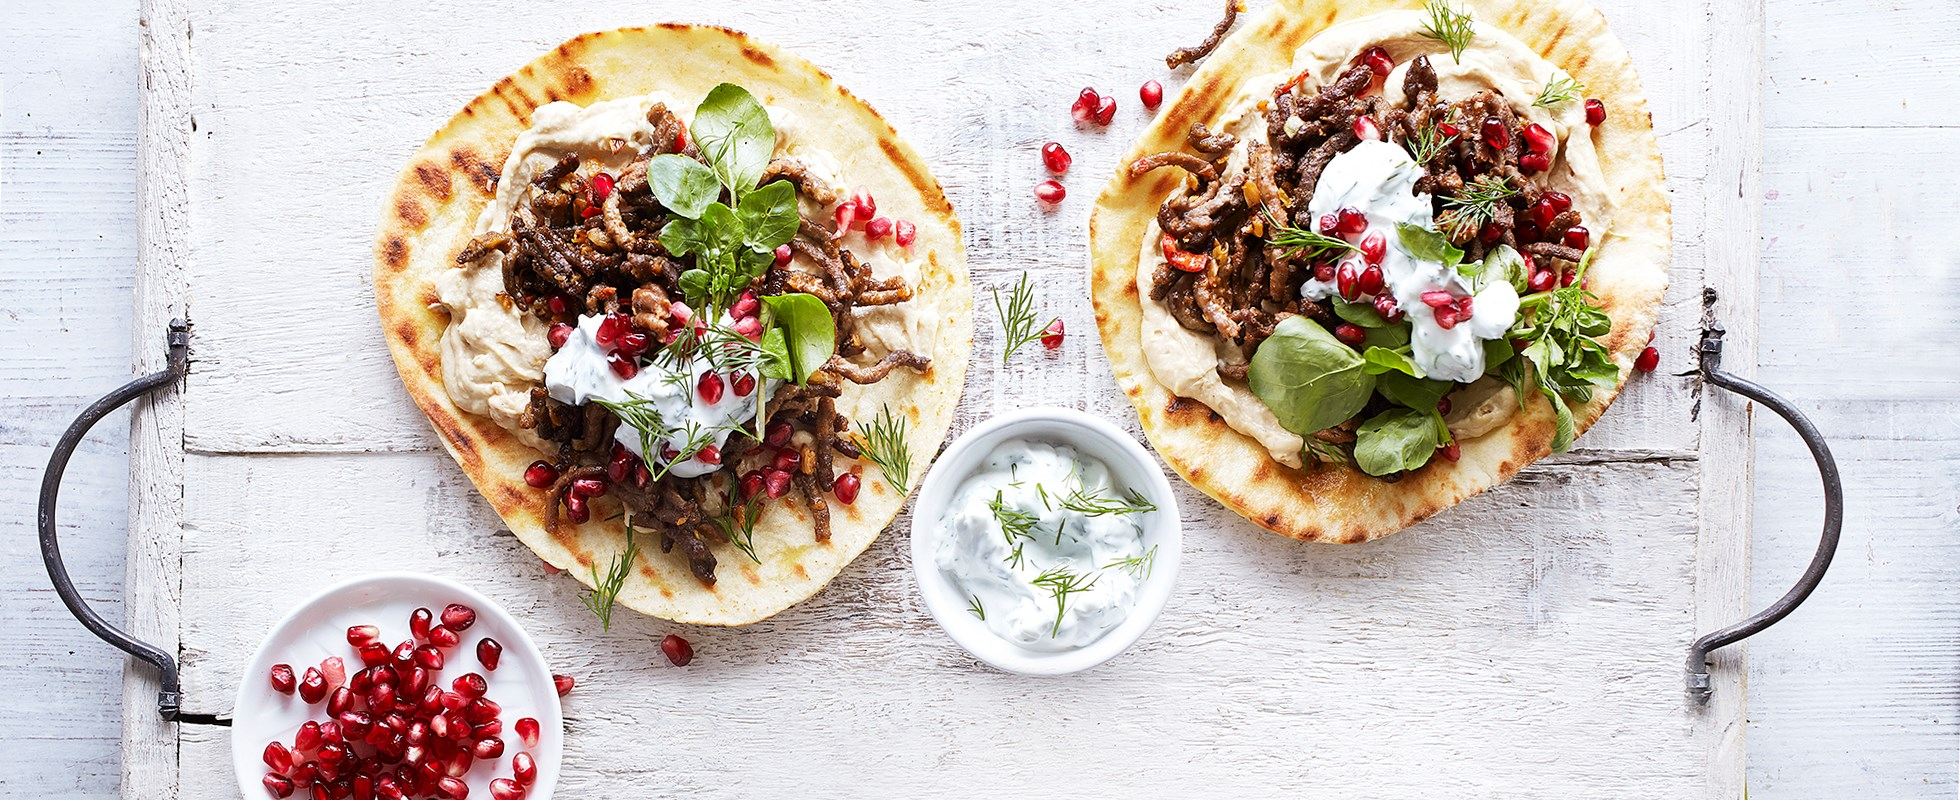 Easy griddle breads with lamb, dill and yogurt topping